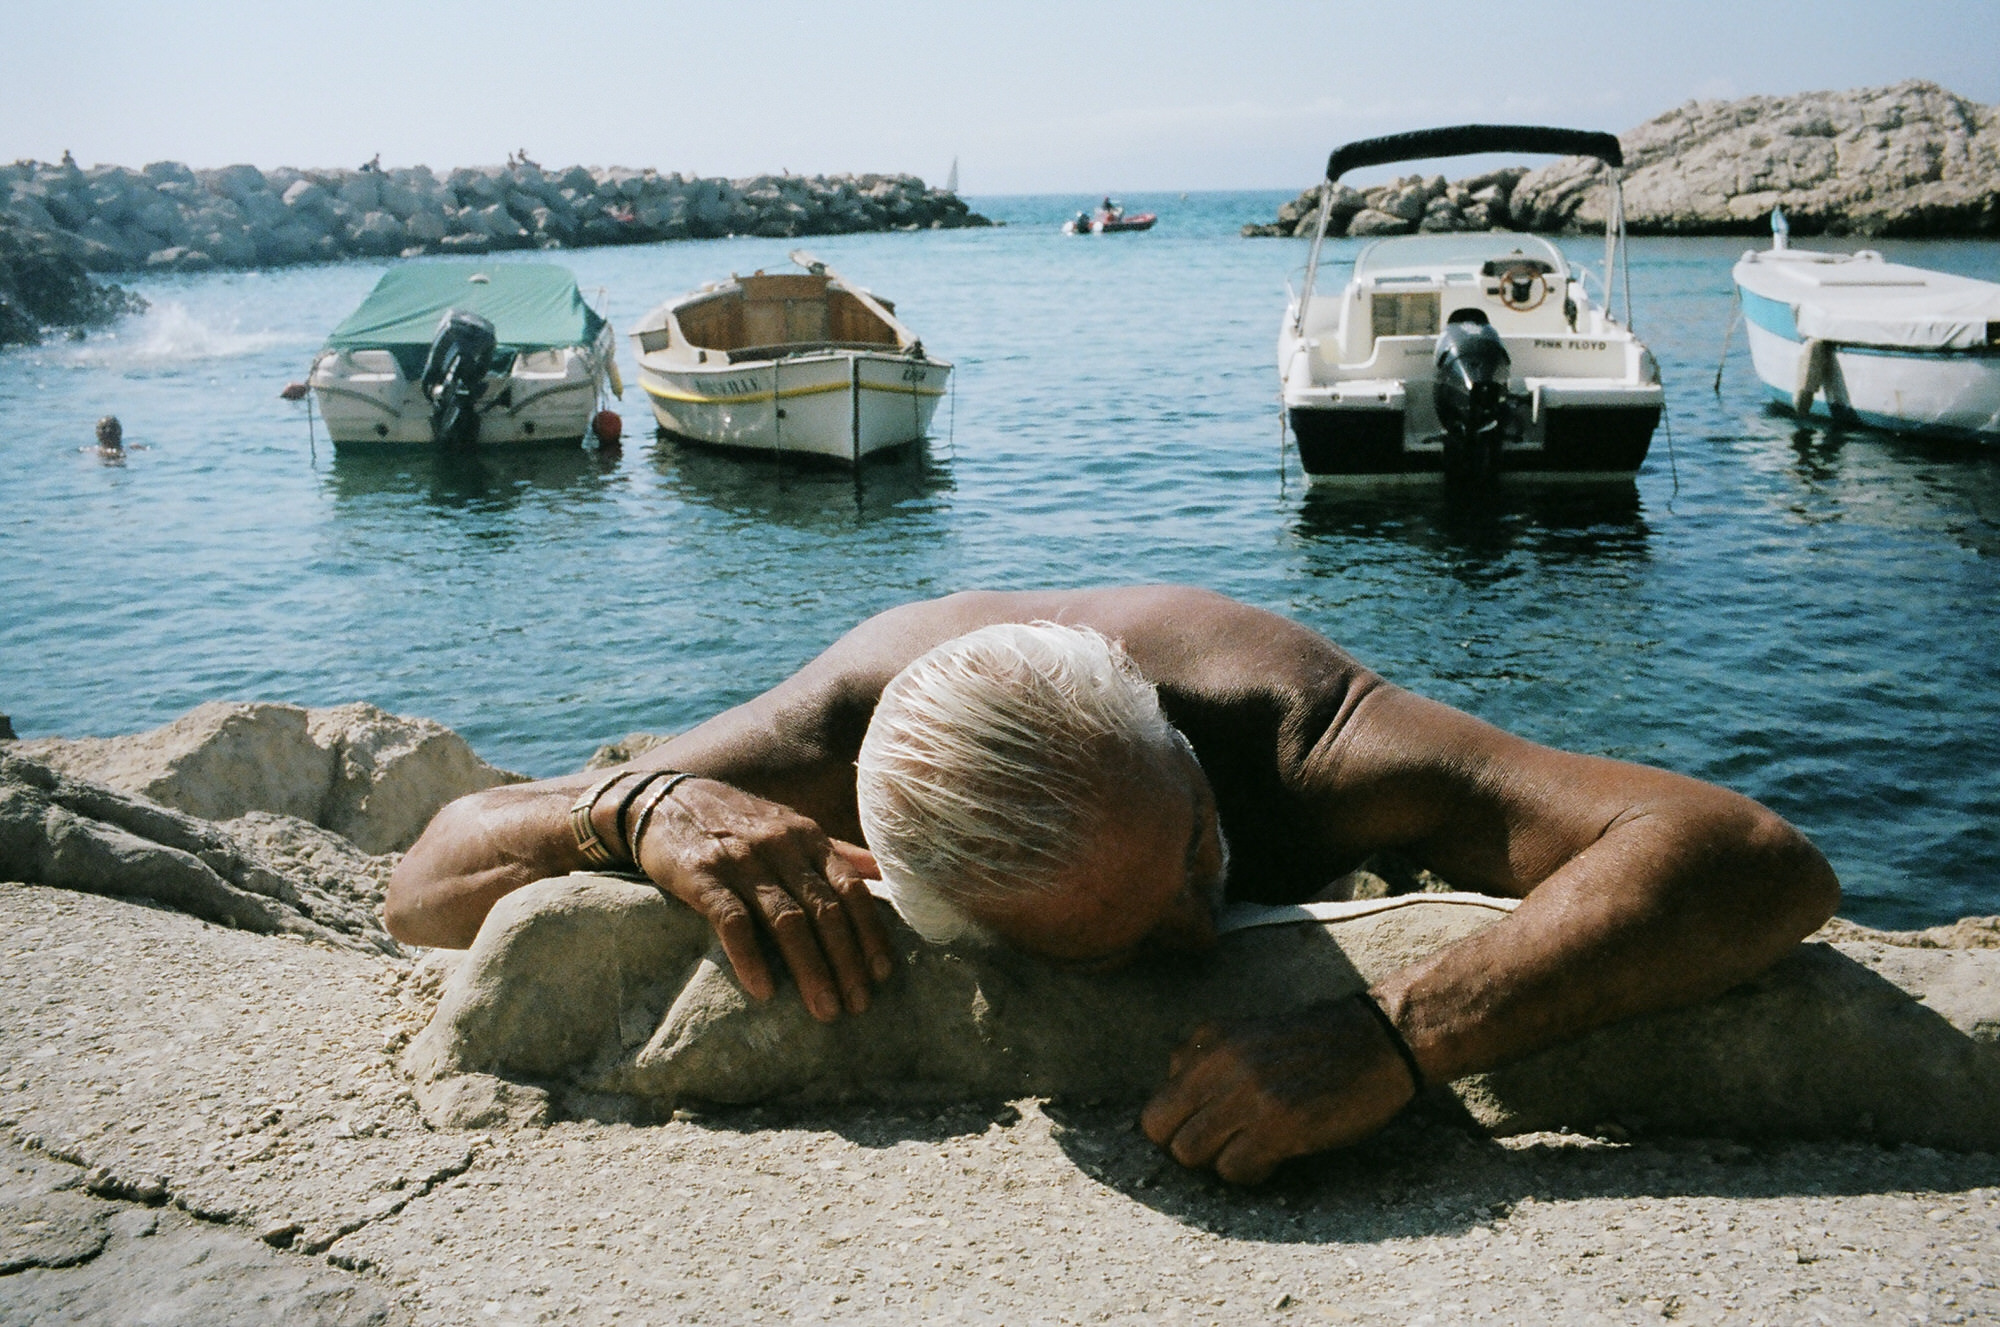 eric kim photography seaside shore blue kodak portra 400 blue ship wreck man marseille sleeping nap